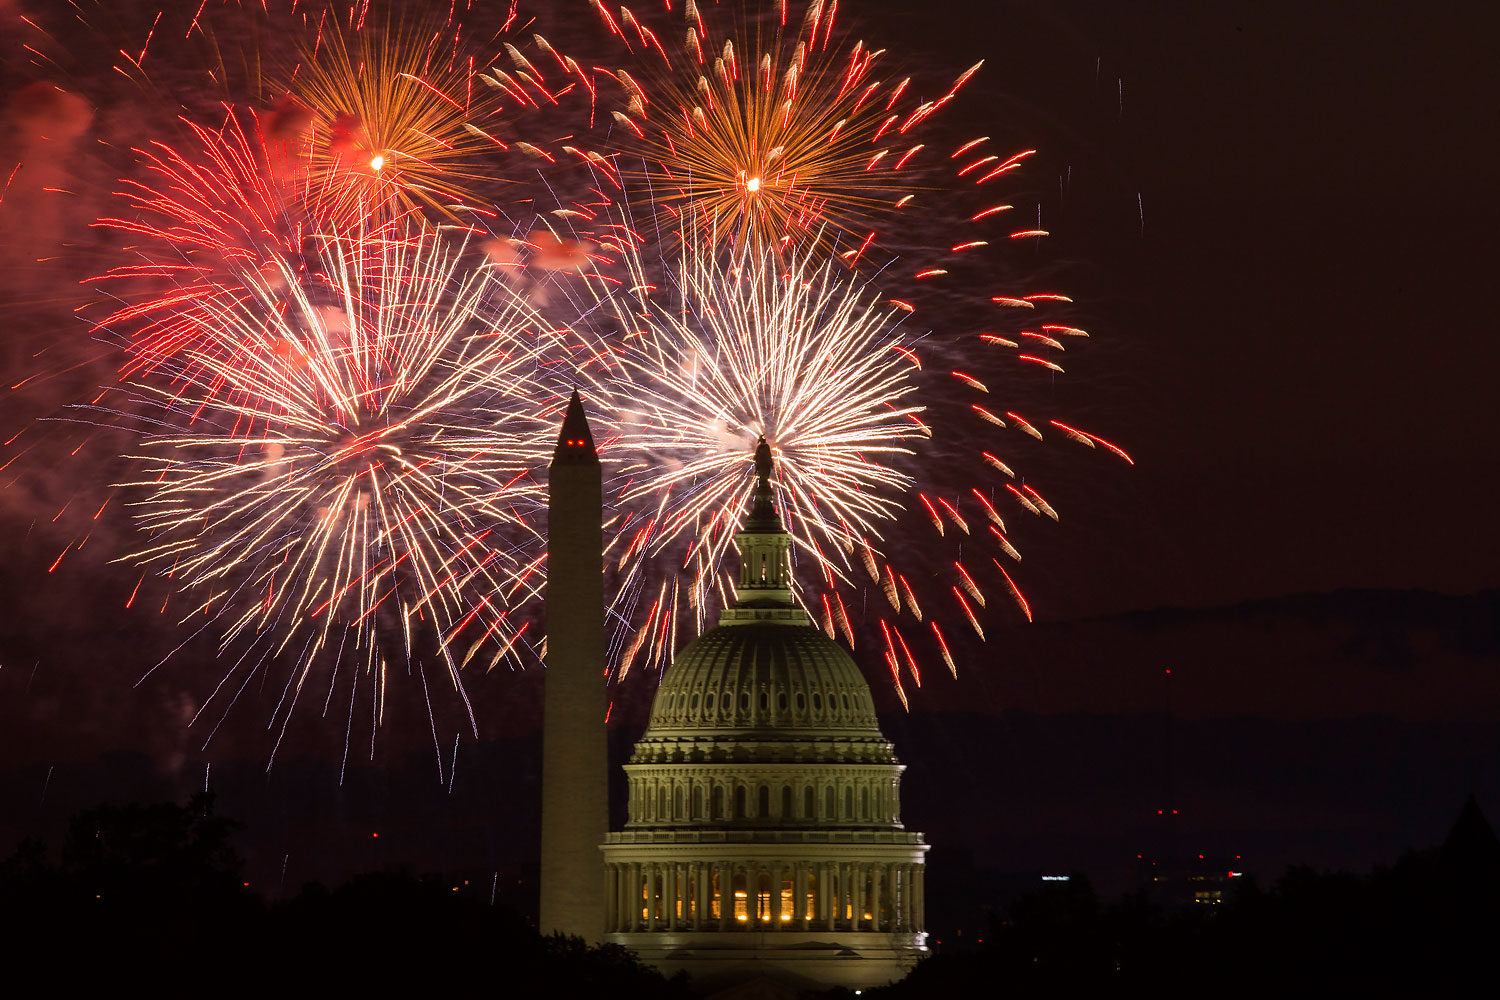 Fireworks illuminate the sky over the U.S. Capitol building and the Washington Monument during Fourth of July celebrations, on Friday, July 4, 2014, in Washington.